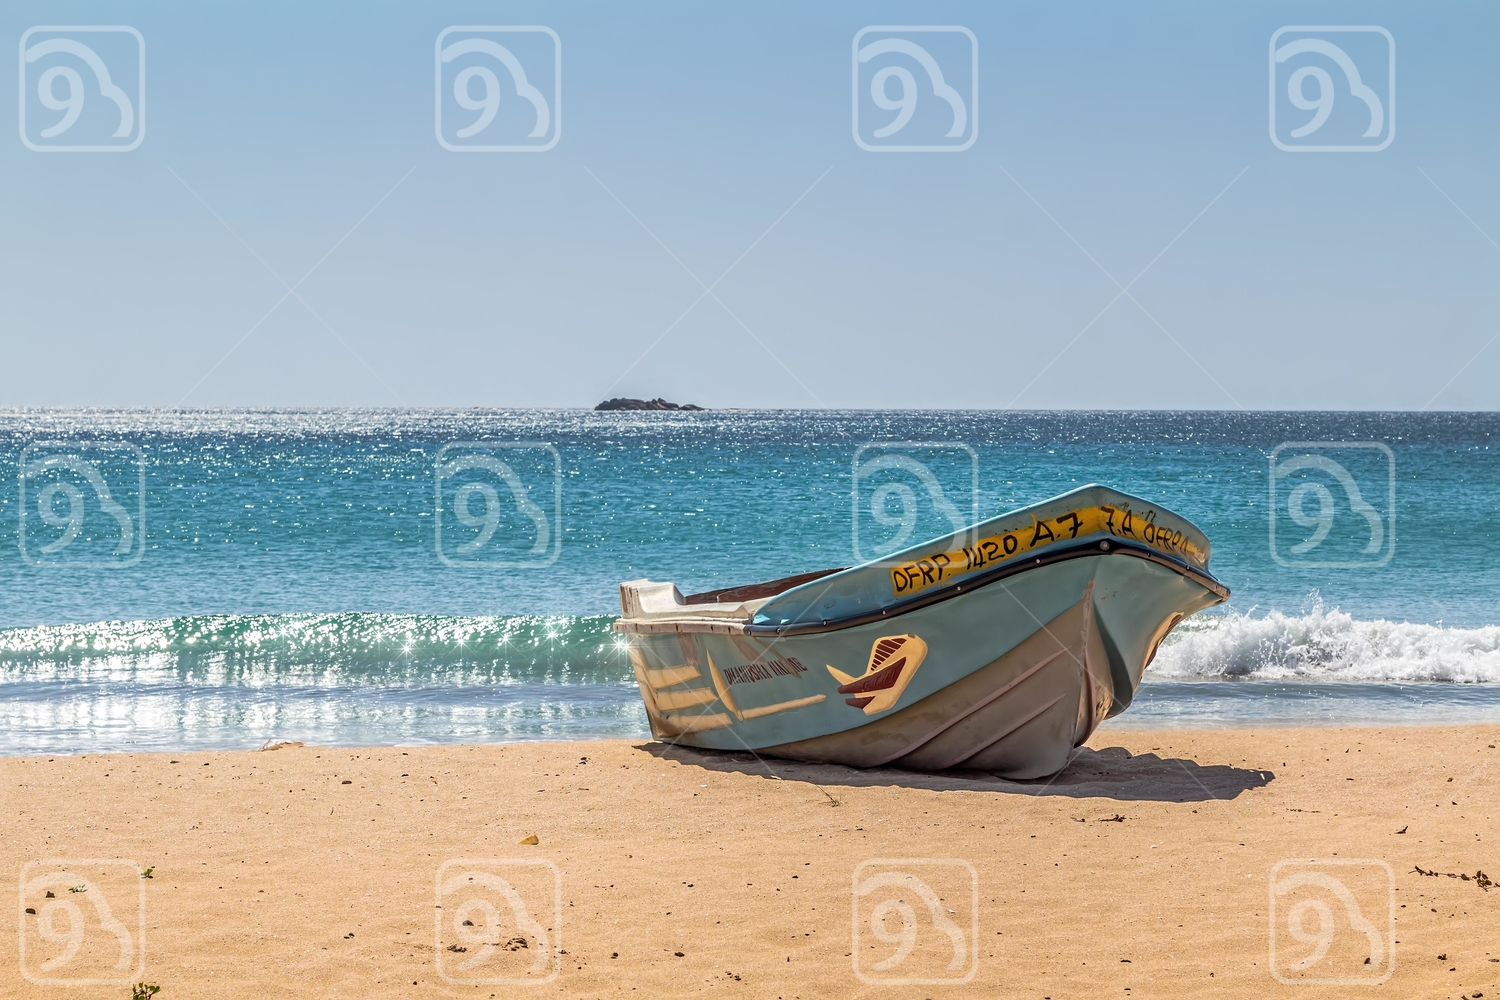 The boat on the sandy shores of the Indian Ocean. Sri Lanka